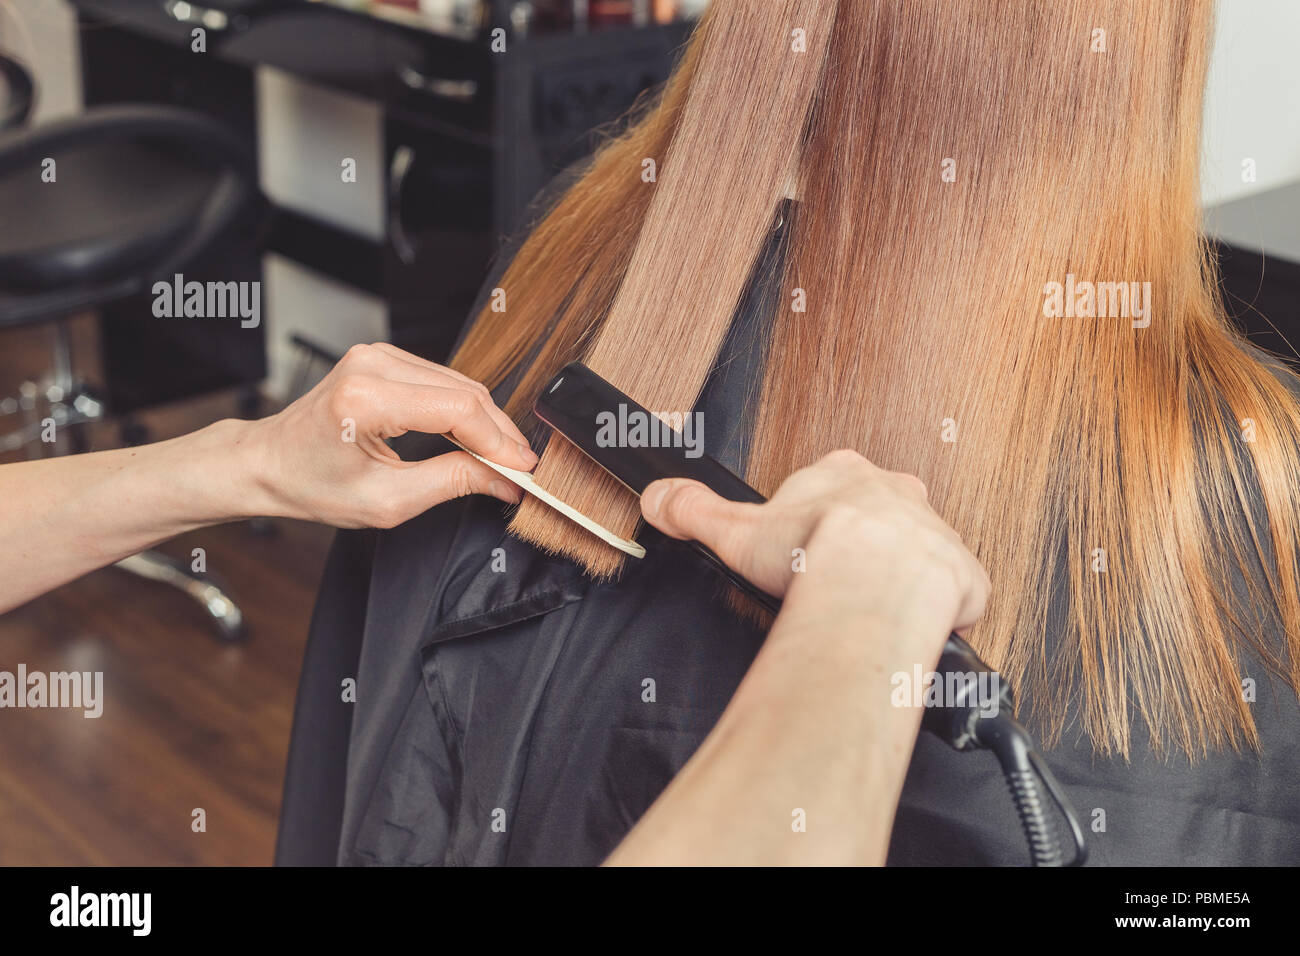 Hair straightening at beauty salon. Hairdresser making a hairstyle for client with a hair iron - Stock Image